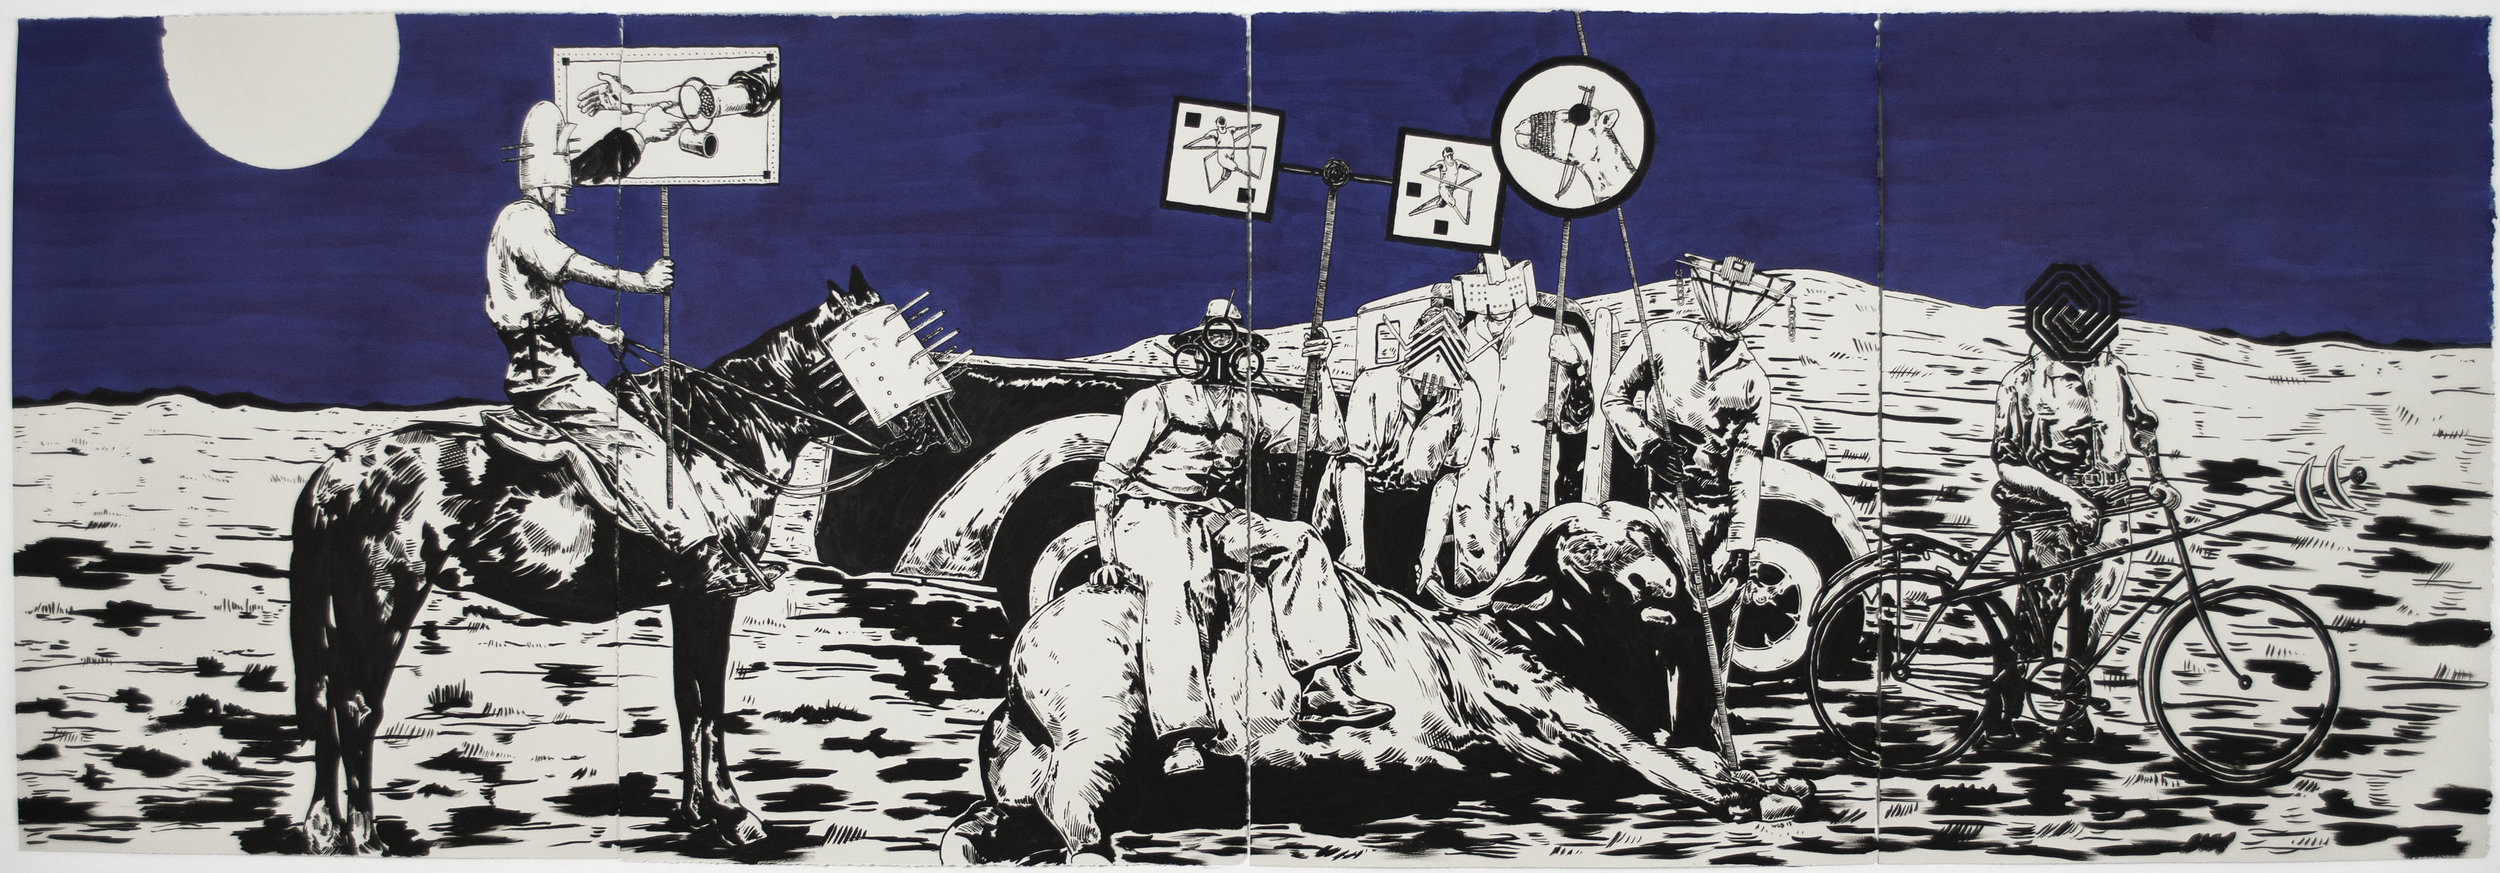 William Buchina  The Tide Has Turned #4 , 2013 India ink on paper, 30 x 88 inches (quadriptych)